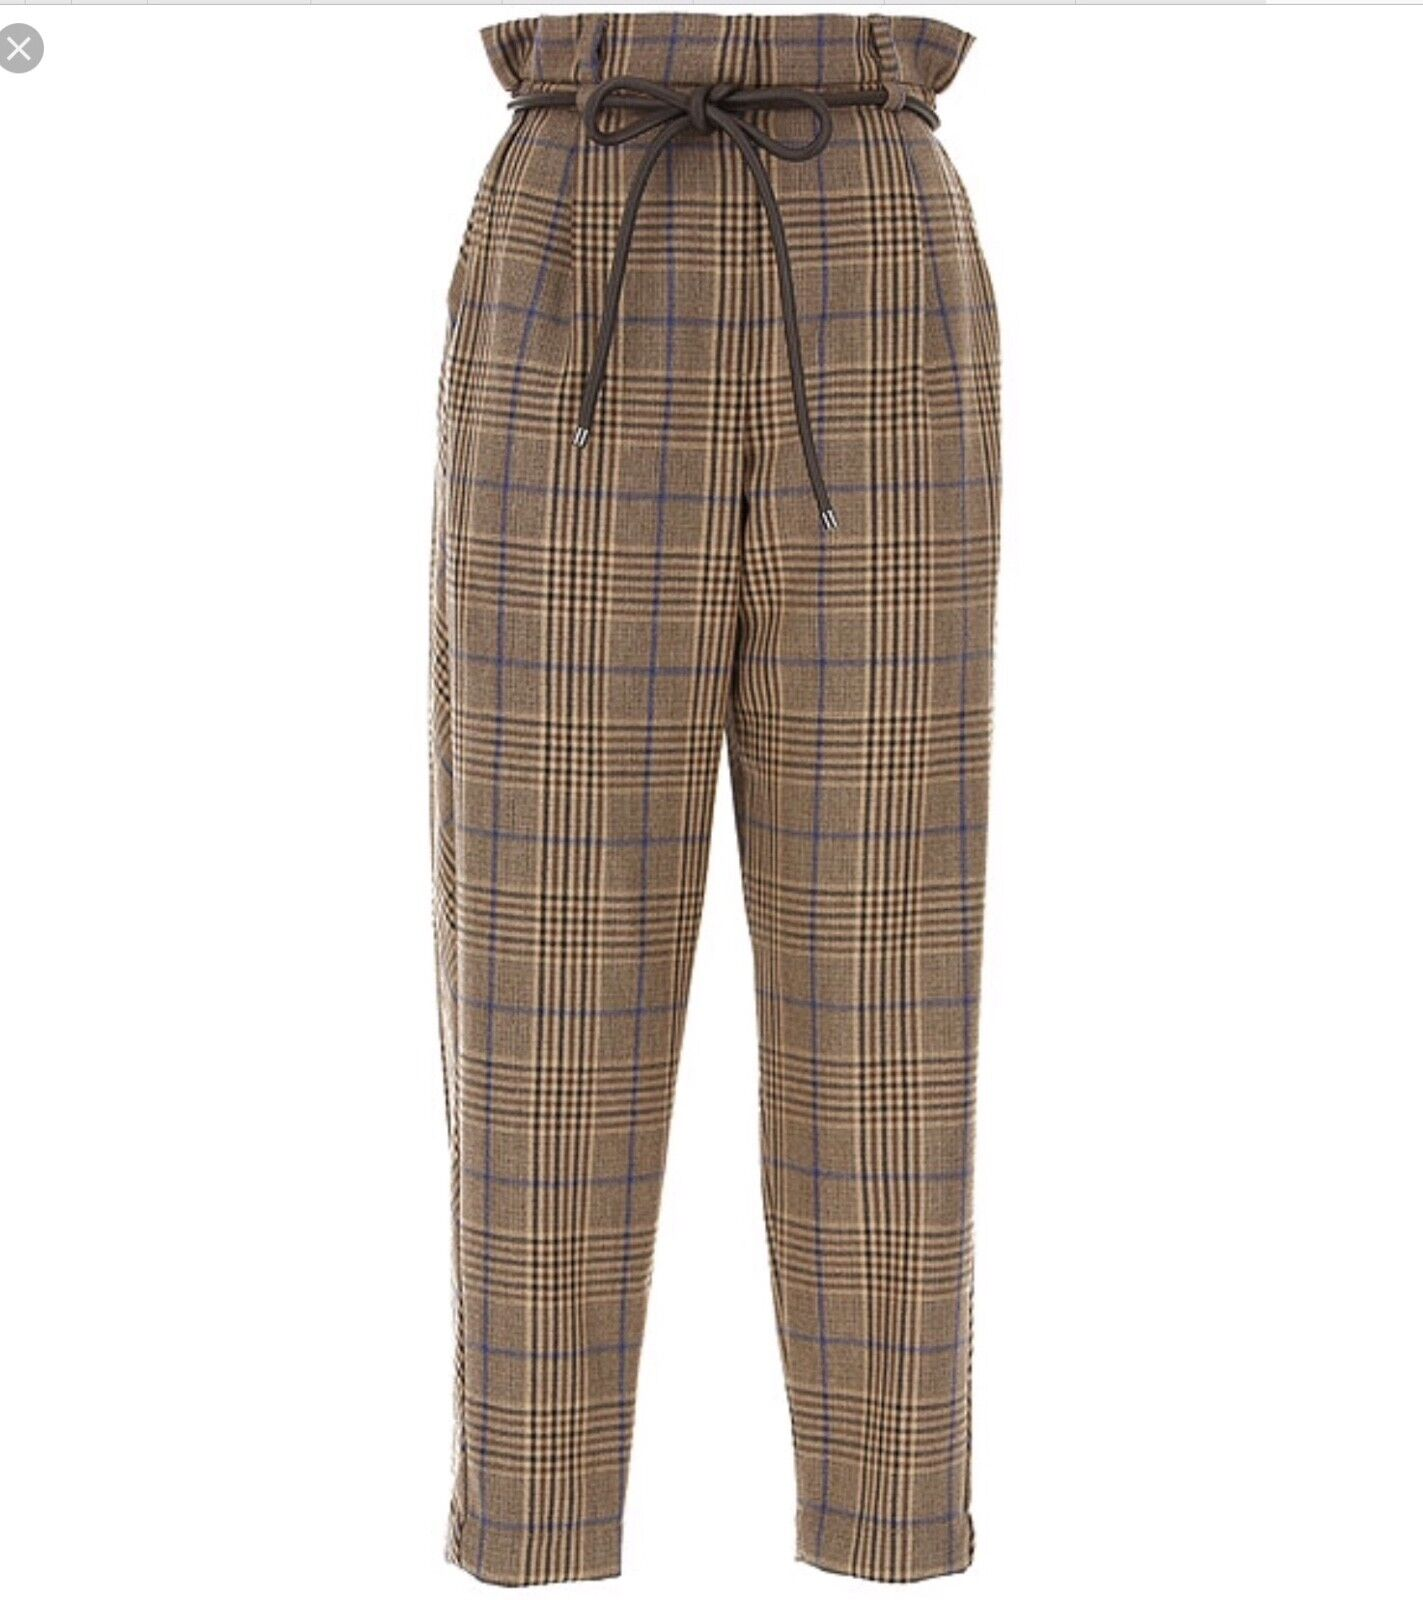 Authentic Brunello Cucinelli  Pants size 6 US 42 IT multicolord mainly brown